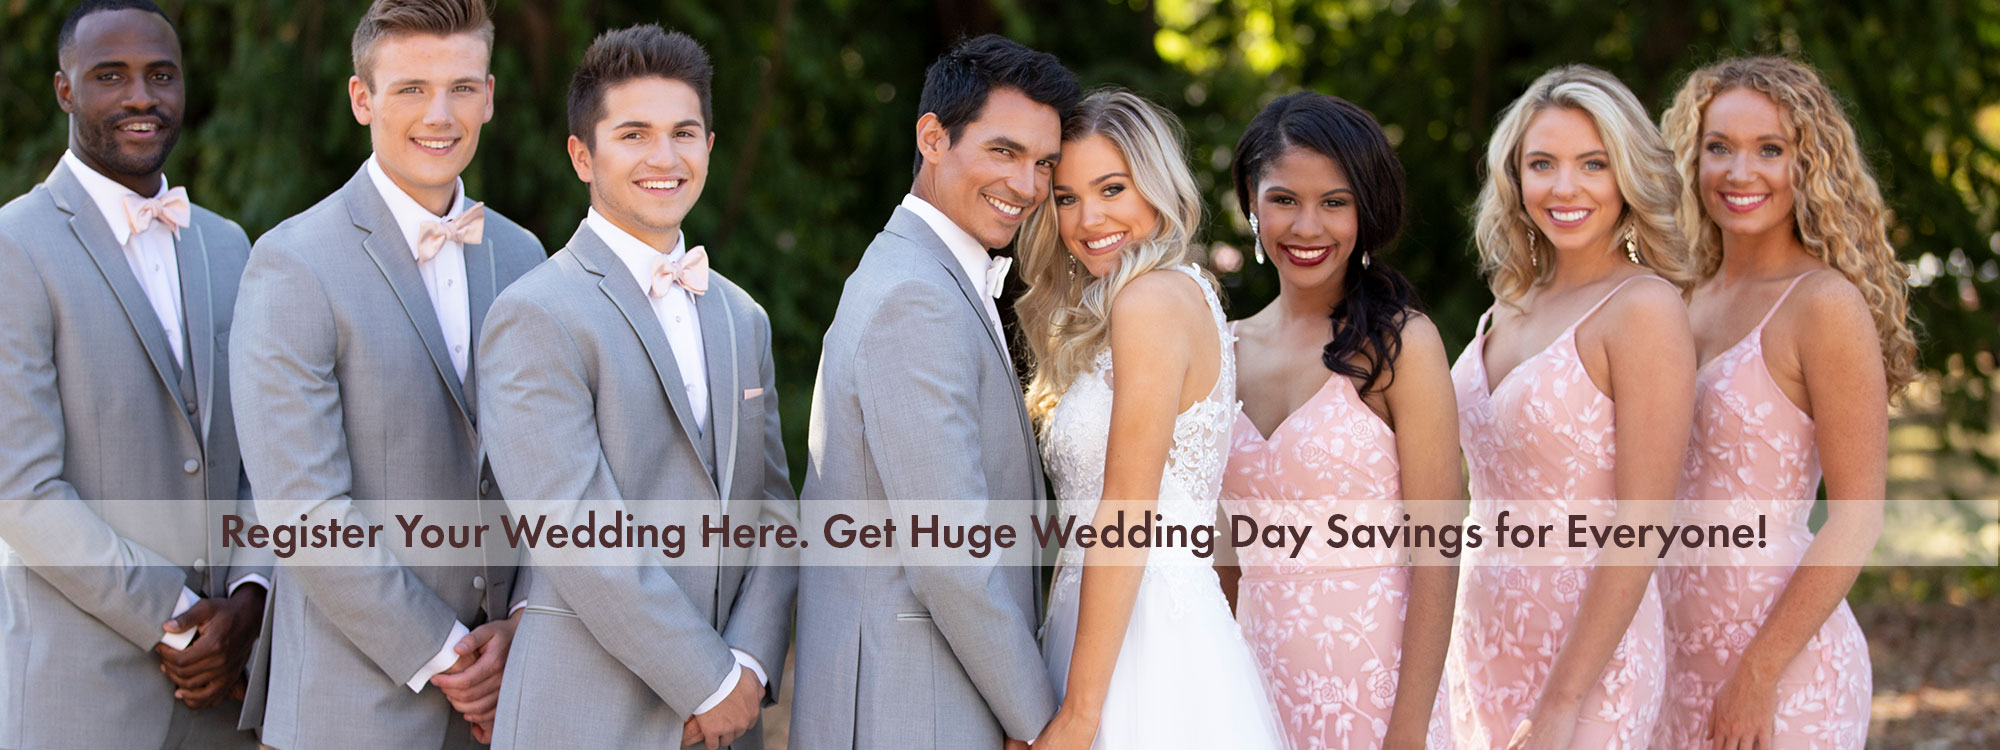 Wedding Appointment Image Header